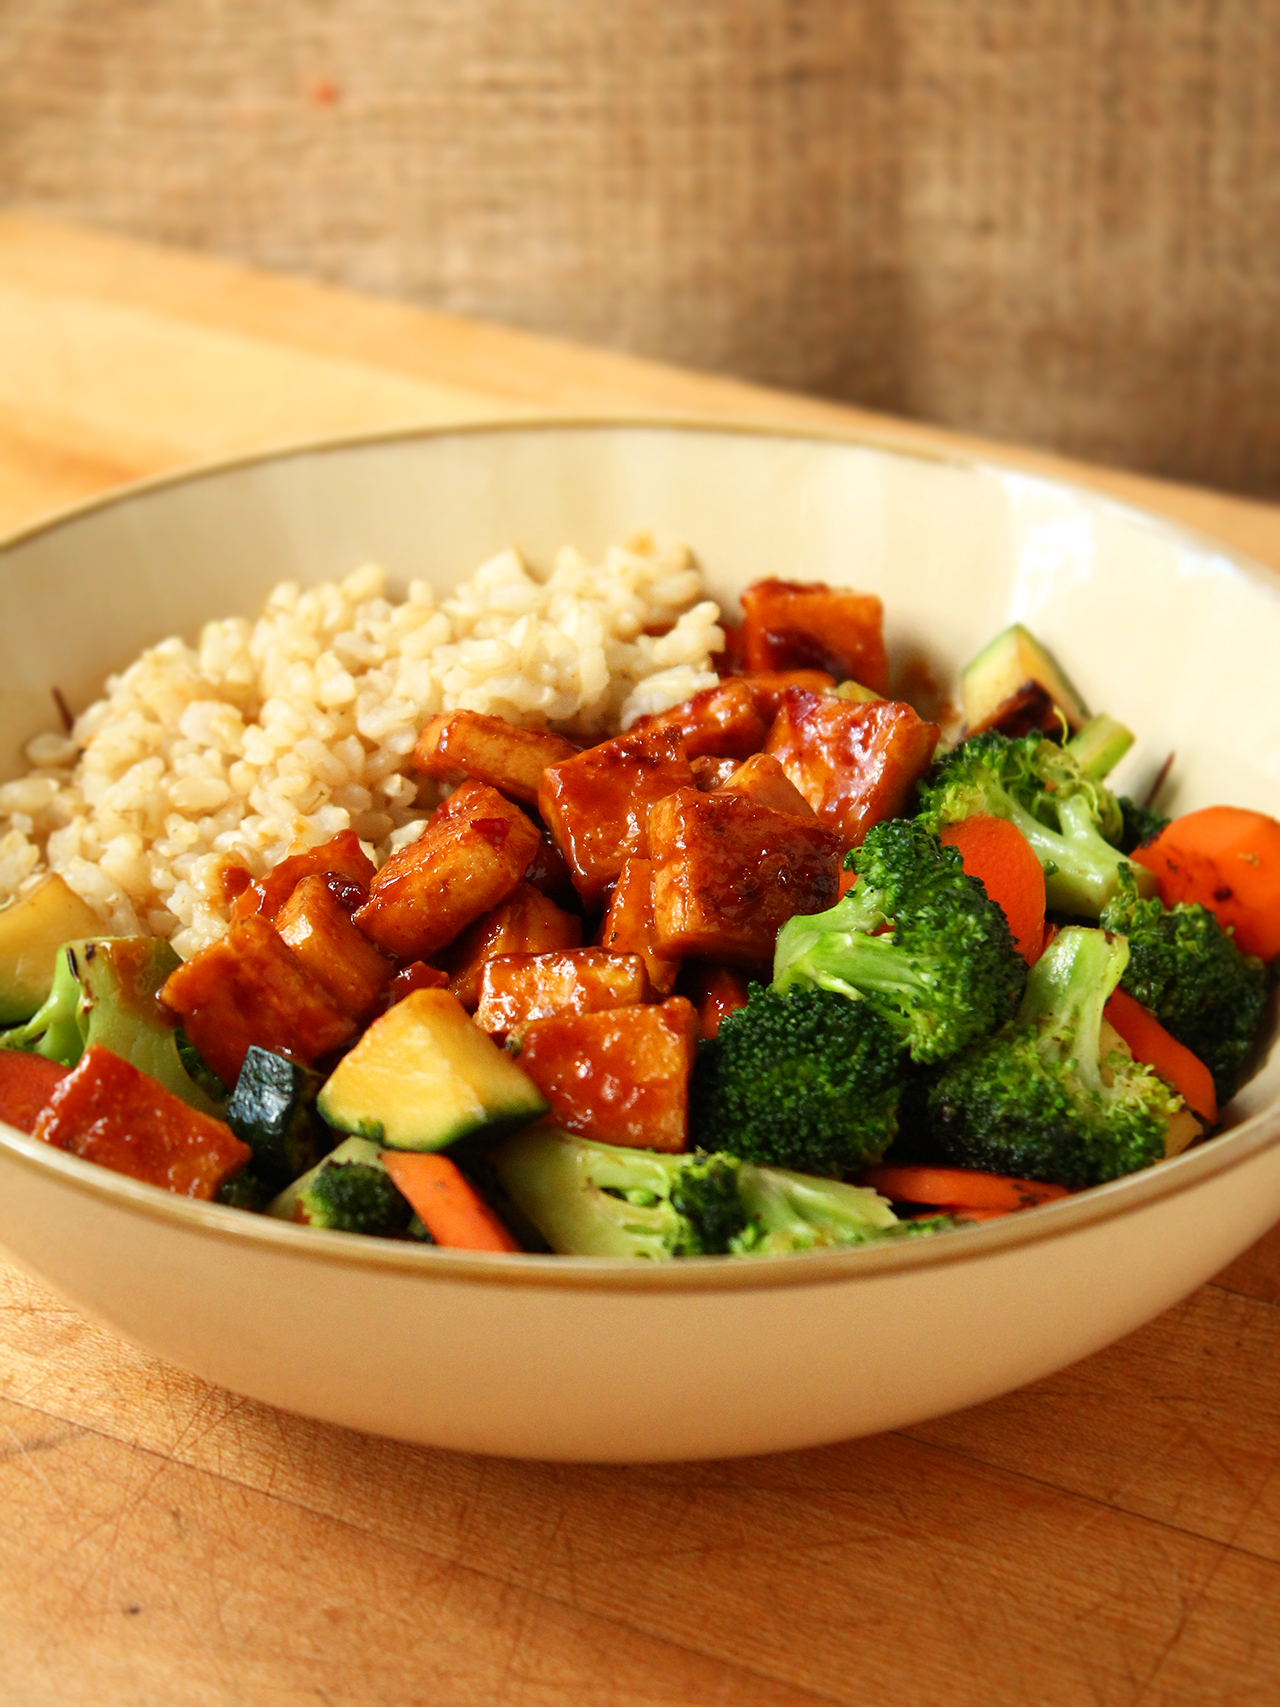 Stir-Fried-Teriyaki-Peanut-Tofu-Brown-Rice-+-Veggies